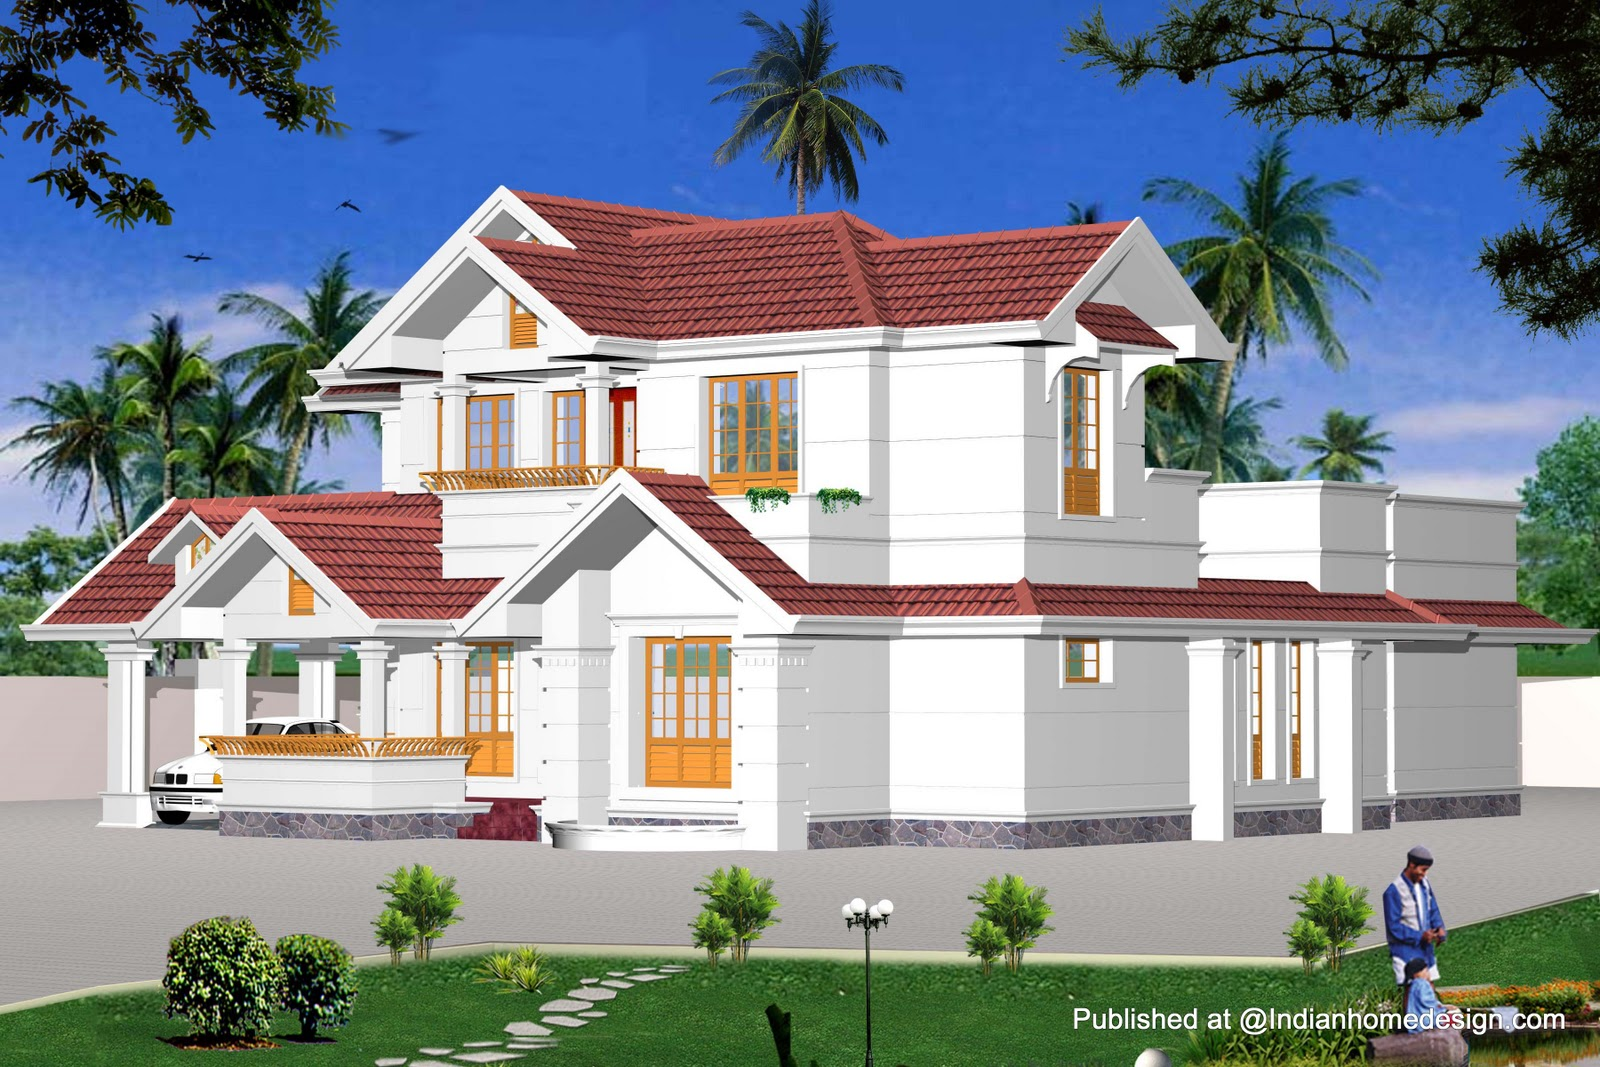 S b property deal abohar Model plans for house